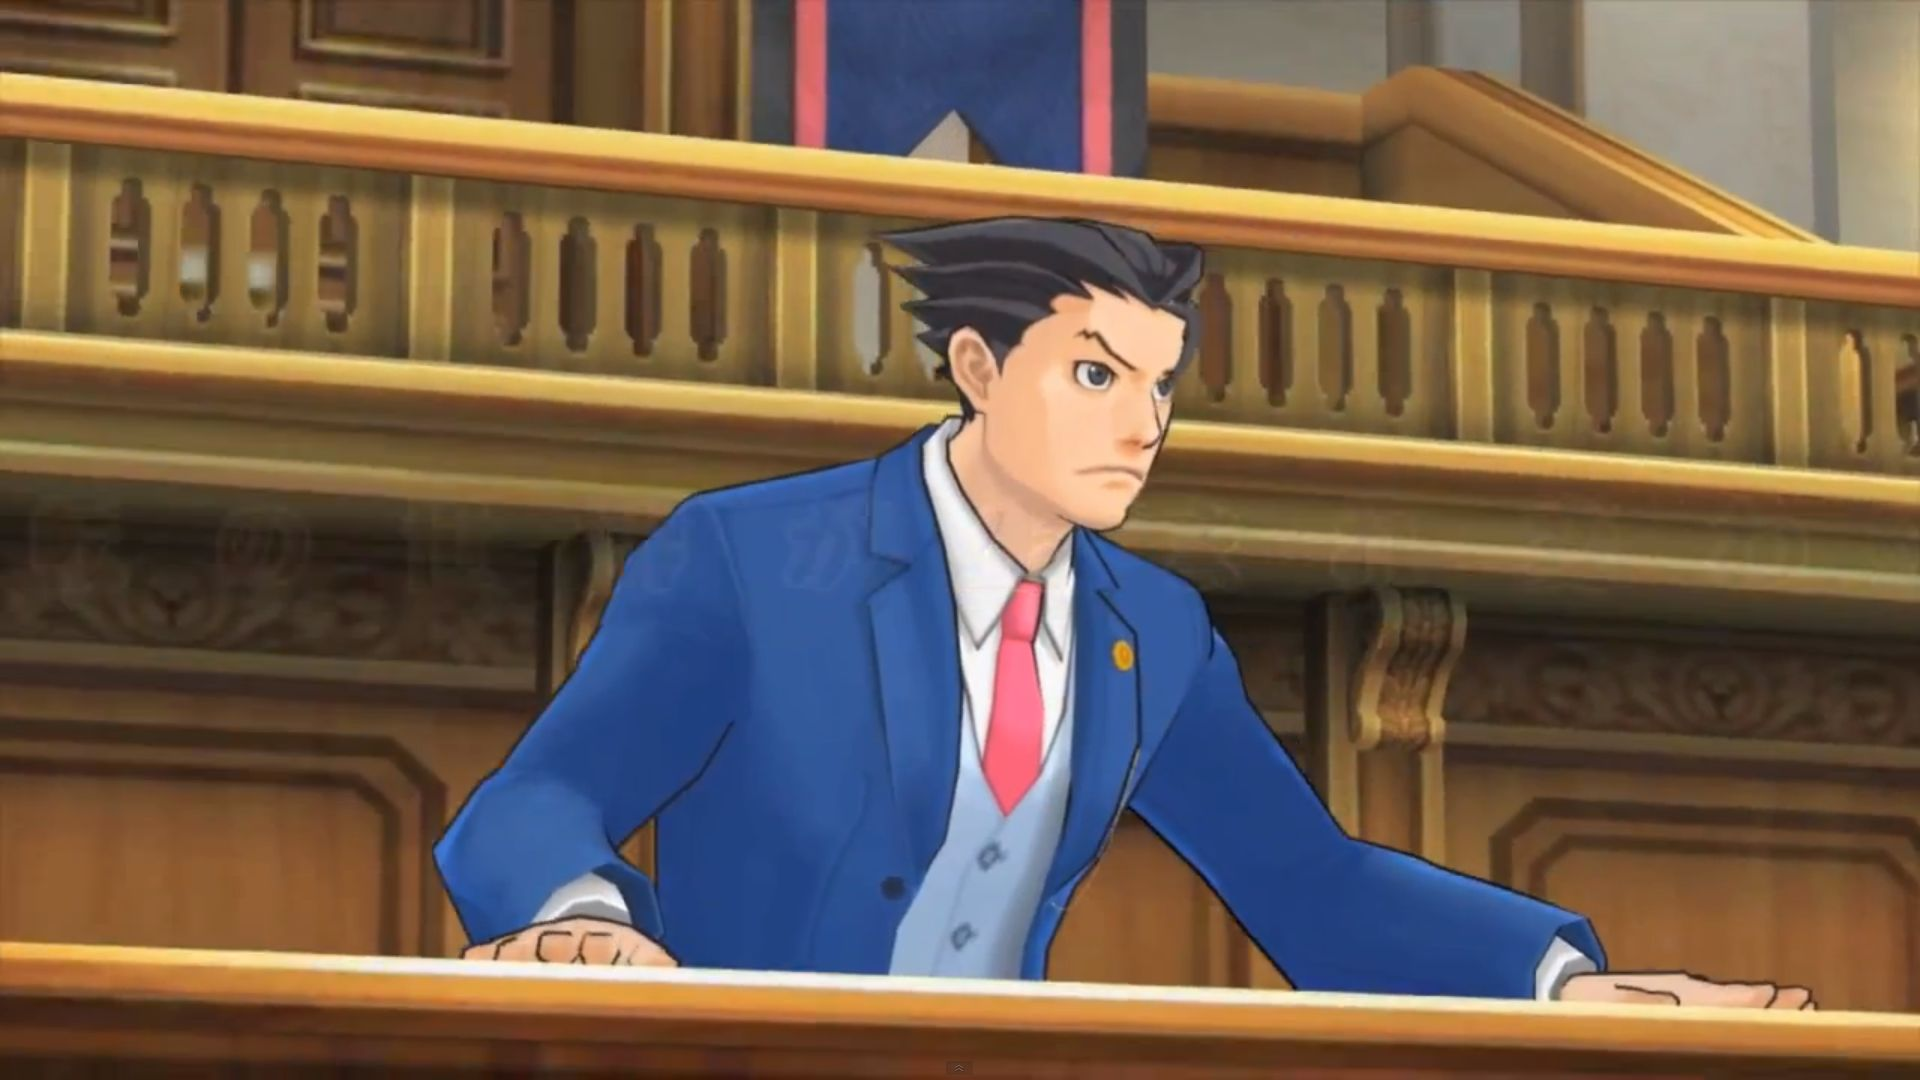 Free Download Remastered Phoenix Wright Ace Attorney Trilogy